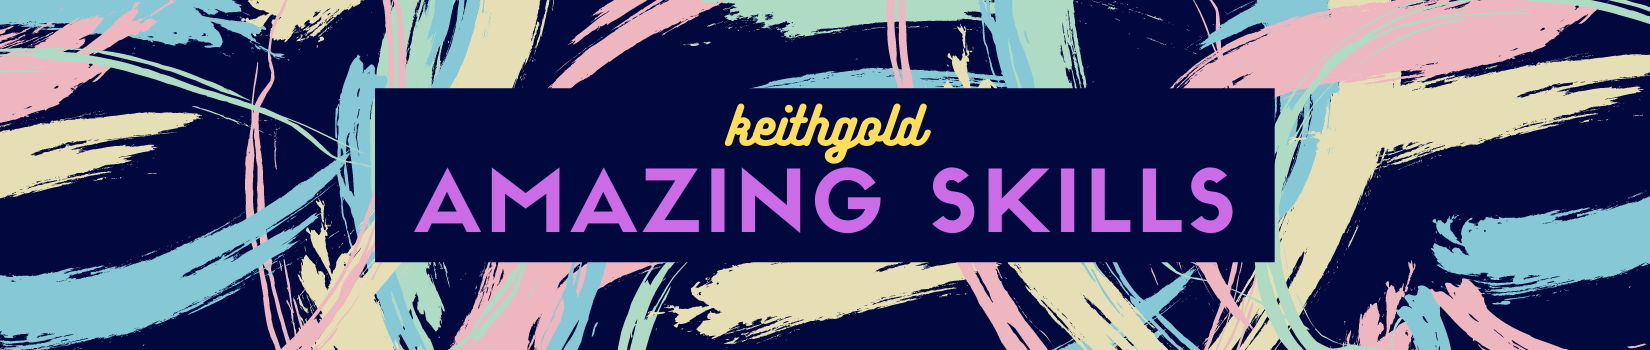 keithgold